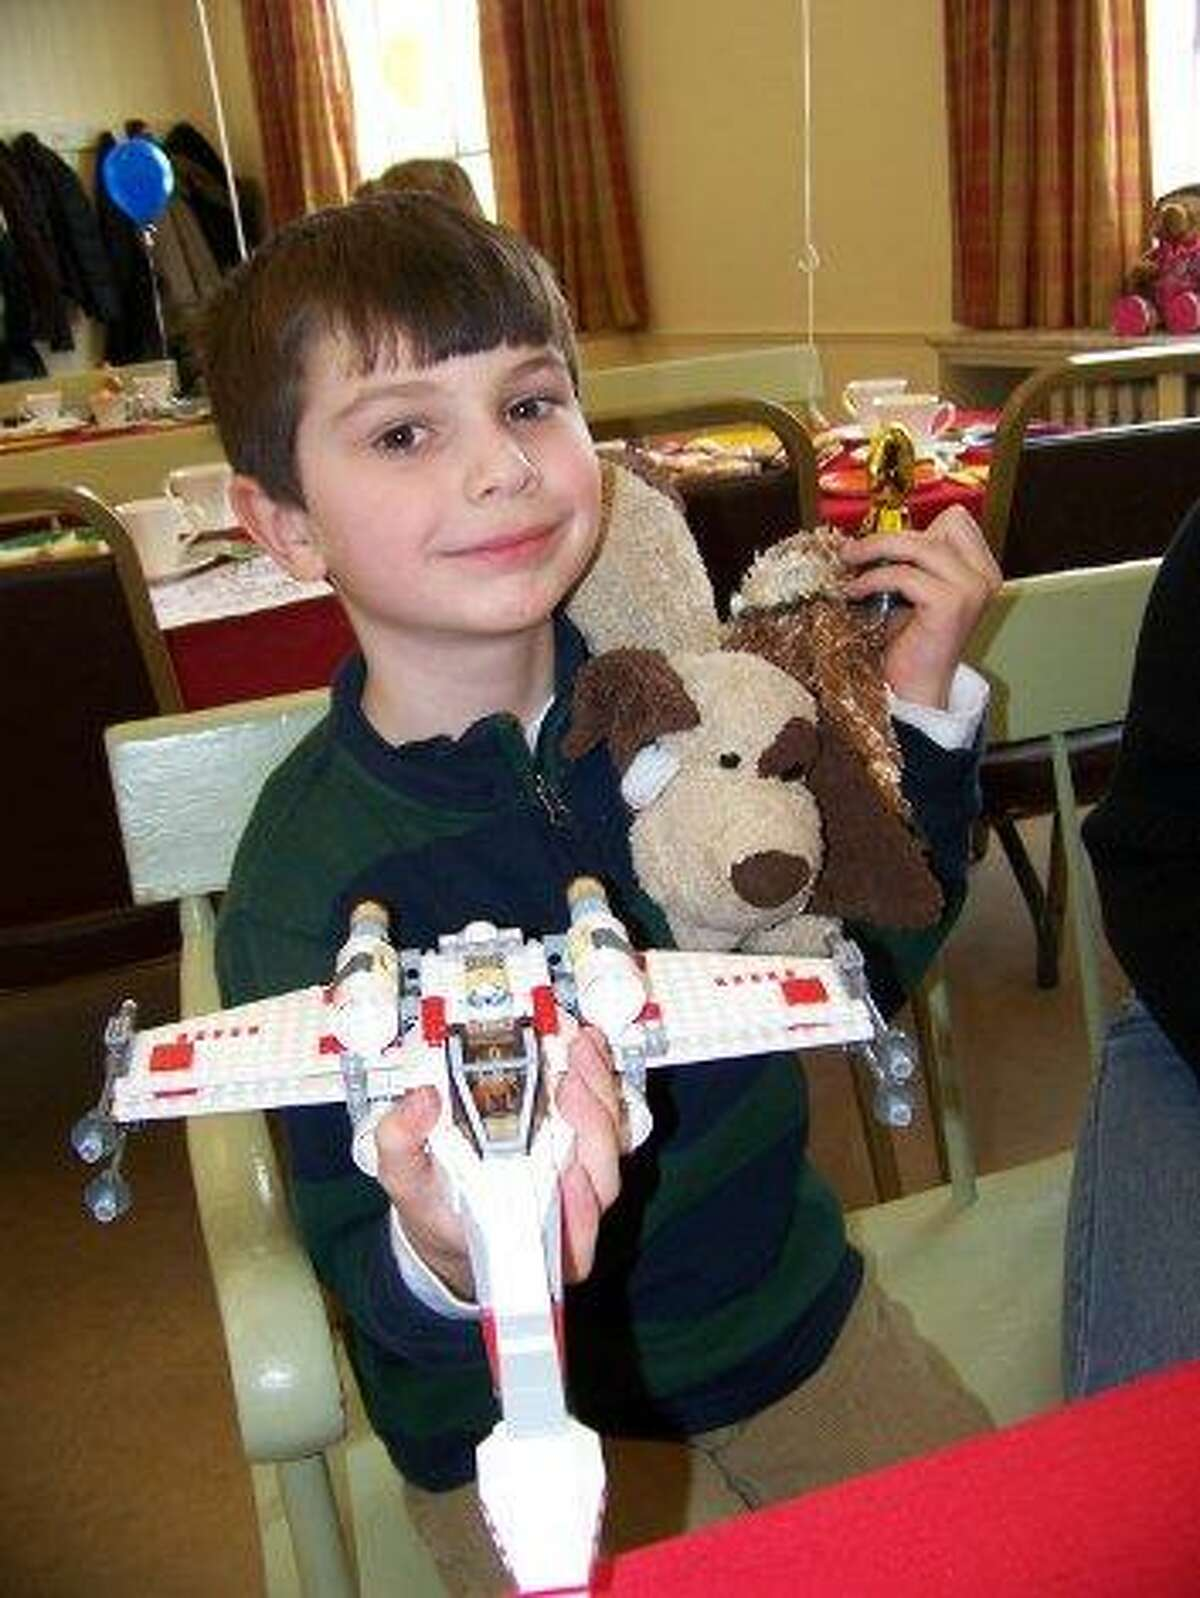 BARBARA THOMAS/Register Citizen Jacob Kuegler, 6-1/2, of Litchfield shows his trophy for winning the LEGO contest, along with his creation: a X-wing fighter from Star Wars.